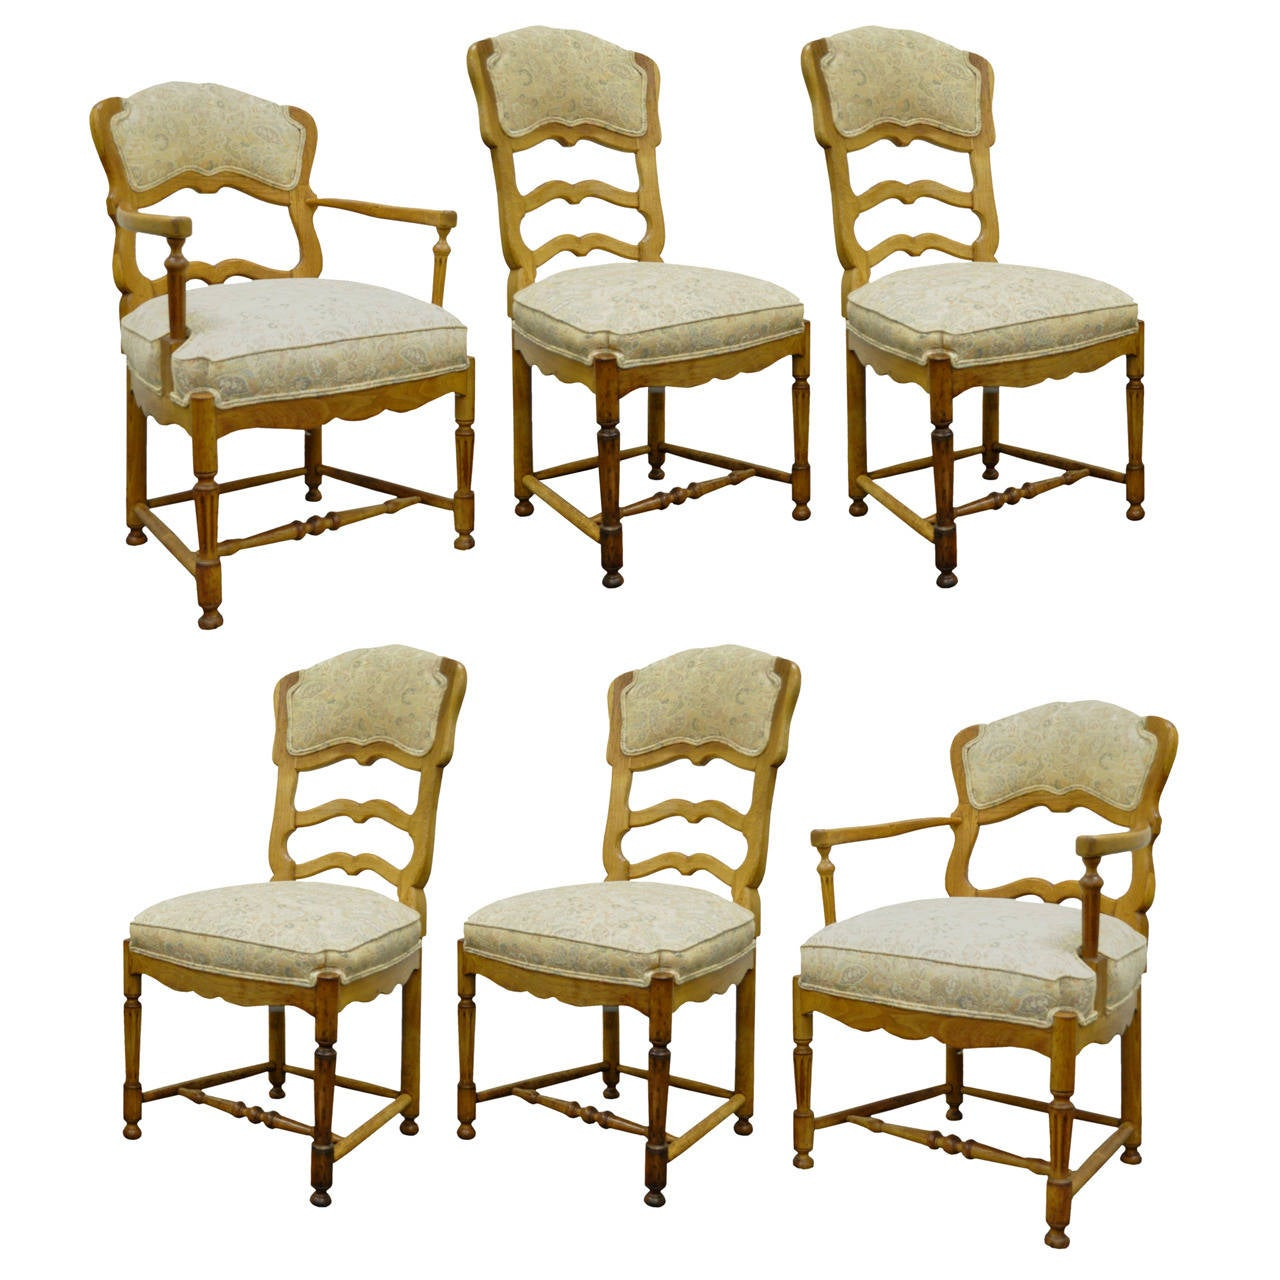 Six French Country Style Carved And Upholstered Ladder Back Dining Chairs At